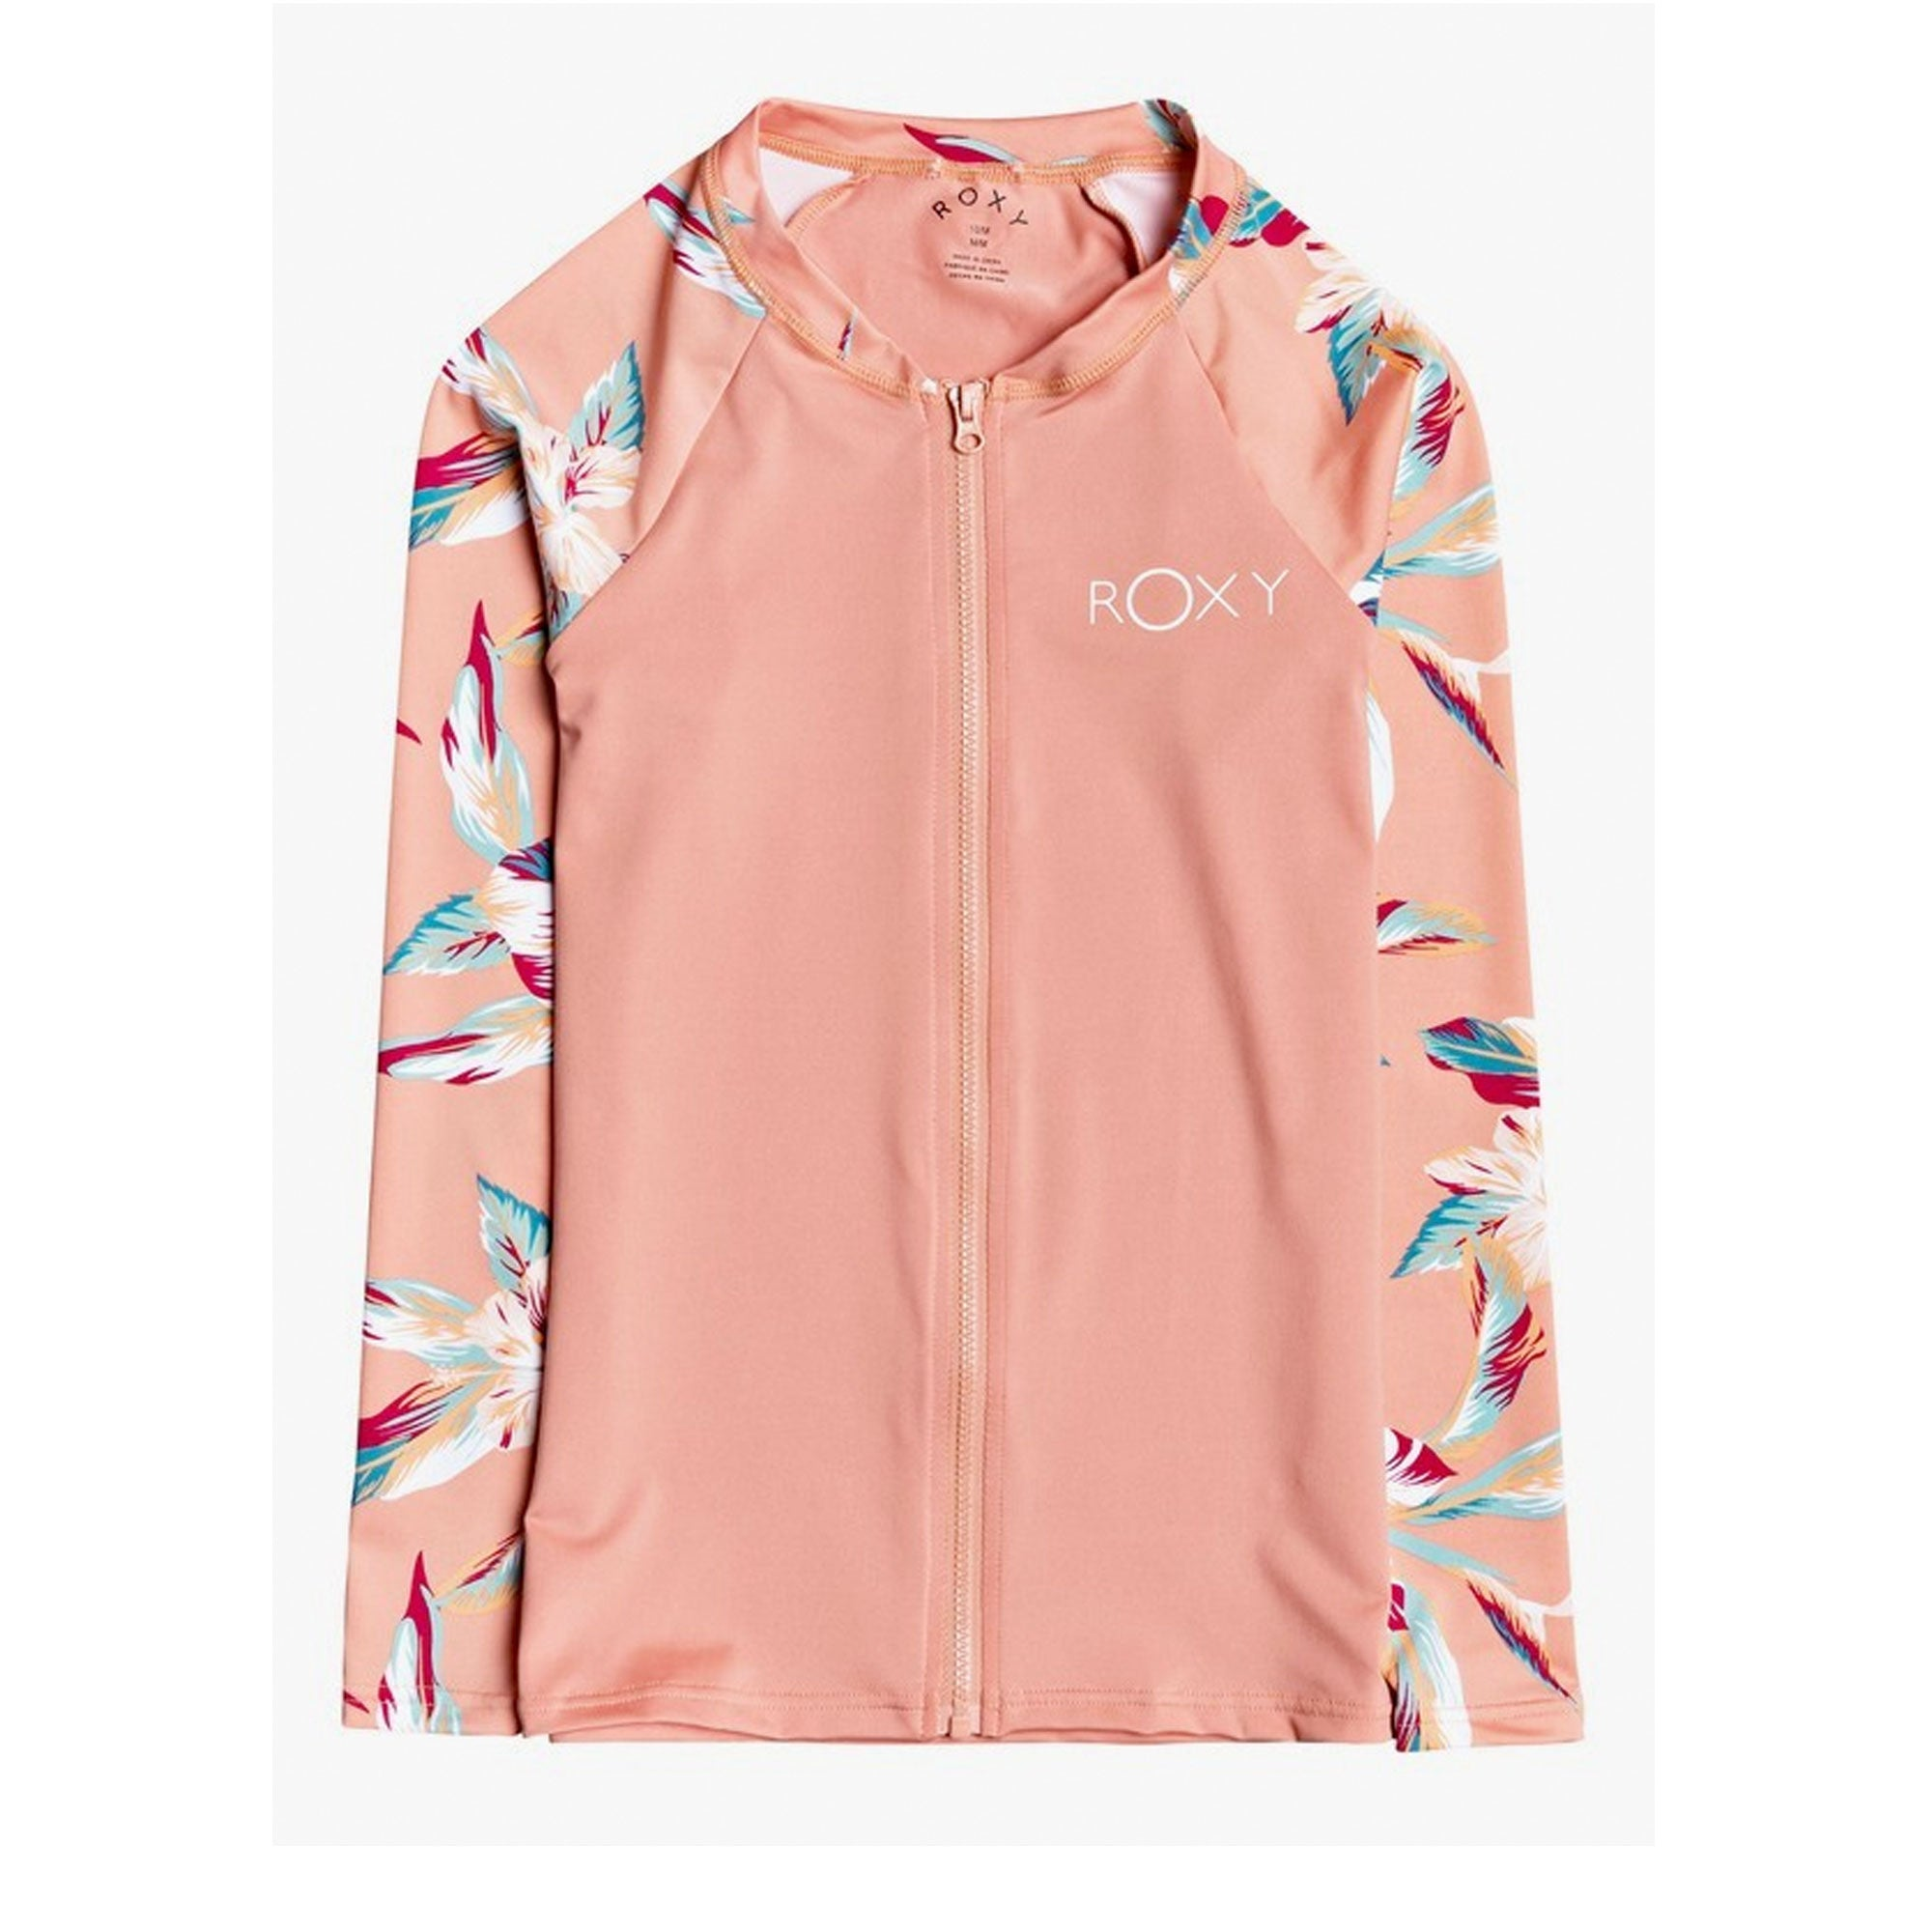 Roxy Made For Girl's L/S Front-Zip UPF 50 Rashguard